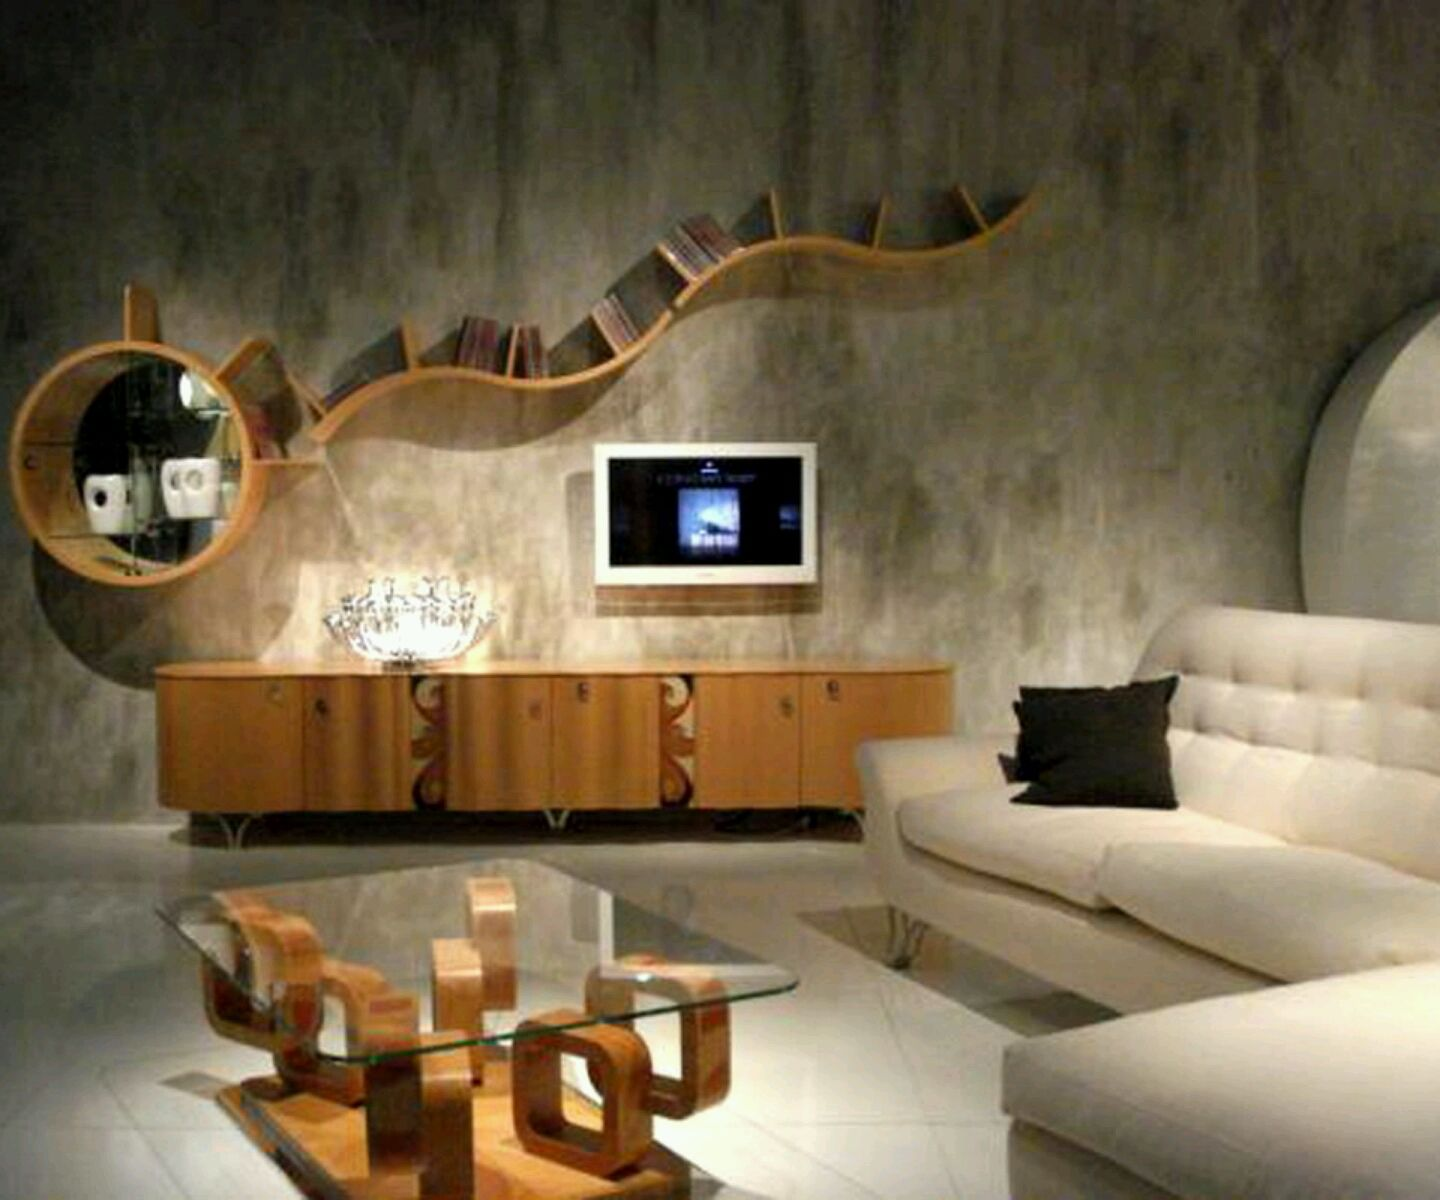 Modern design living living room painting ideas room rendering wonderful interior decorating ideas with white sectional sofa set and cofee table glass also